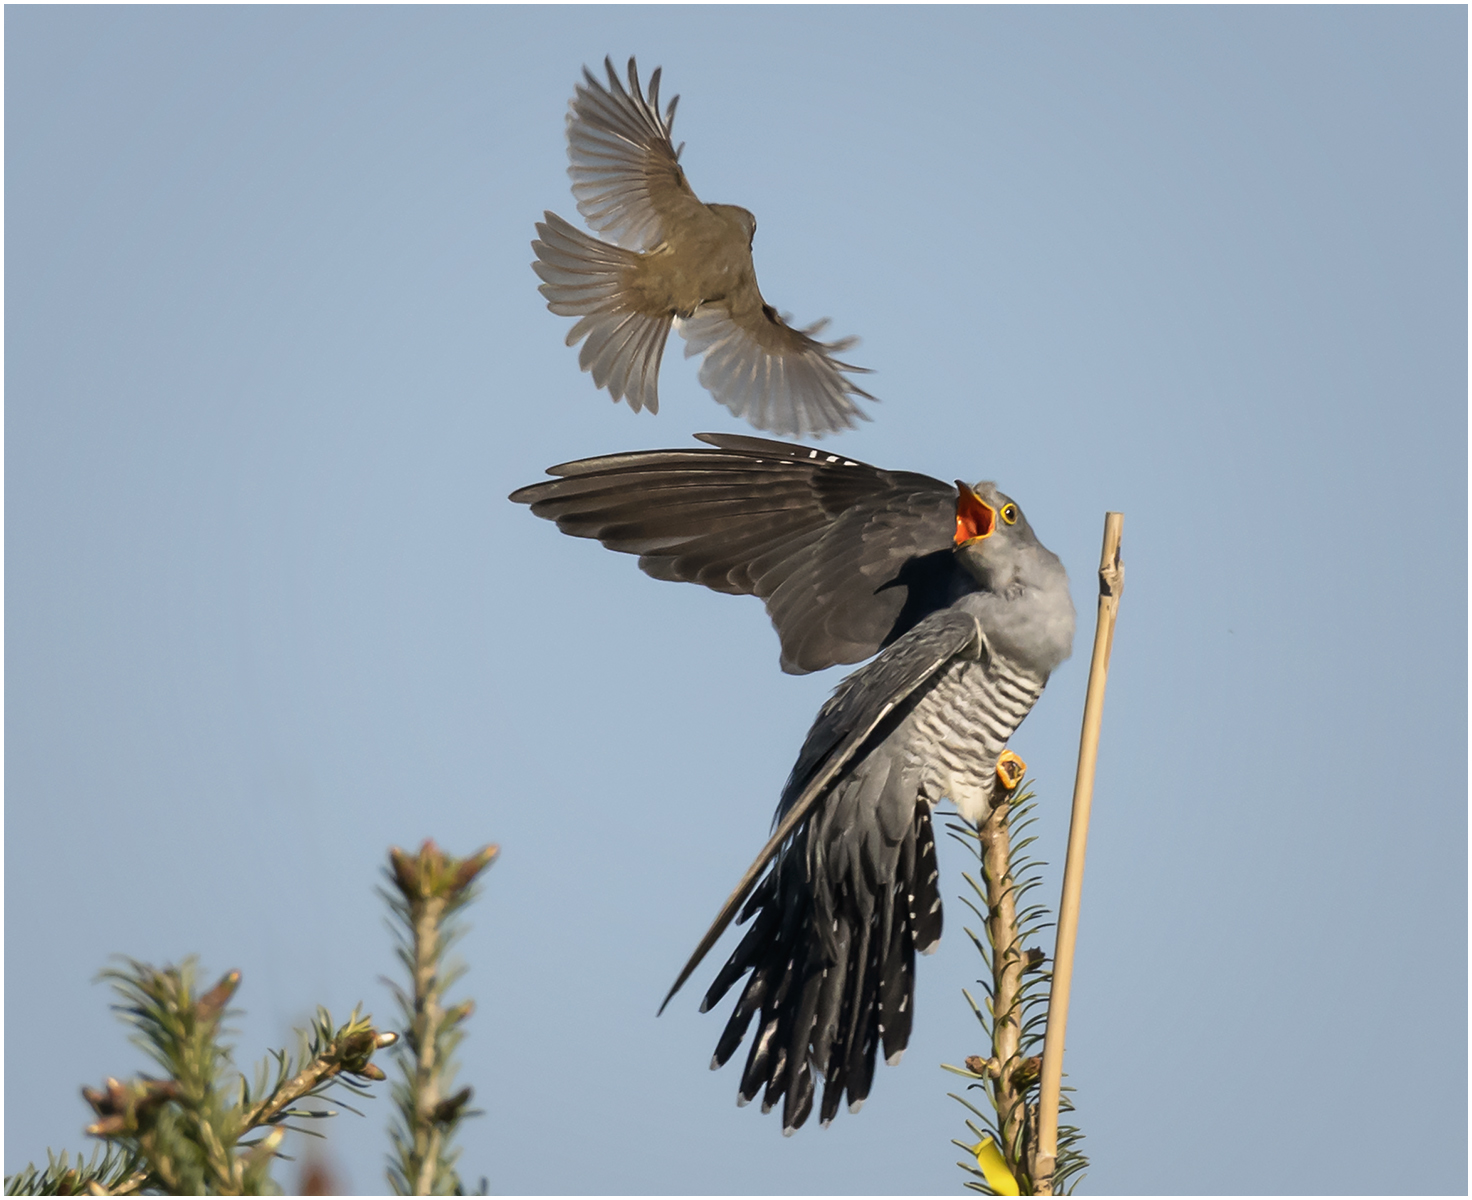 Cuckoo-Being-Mobbed-by-Robin